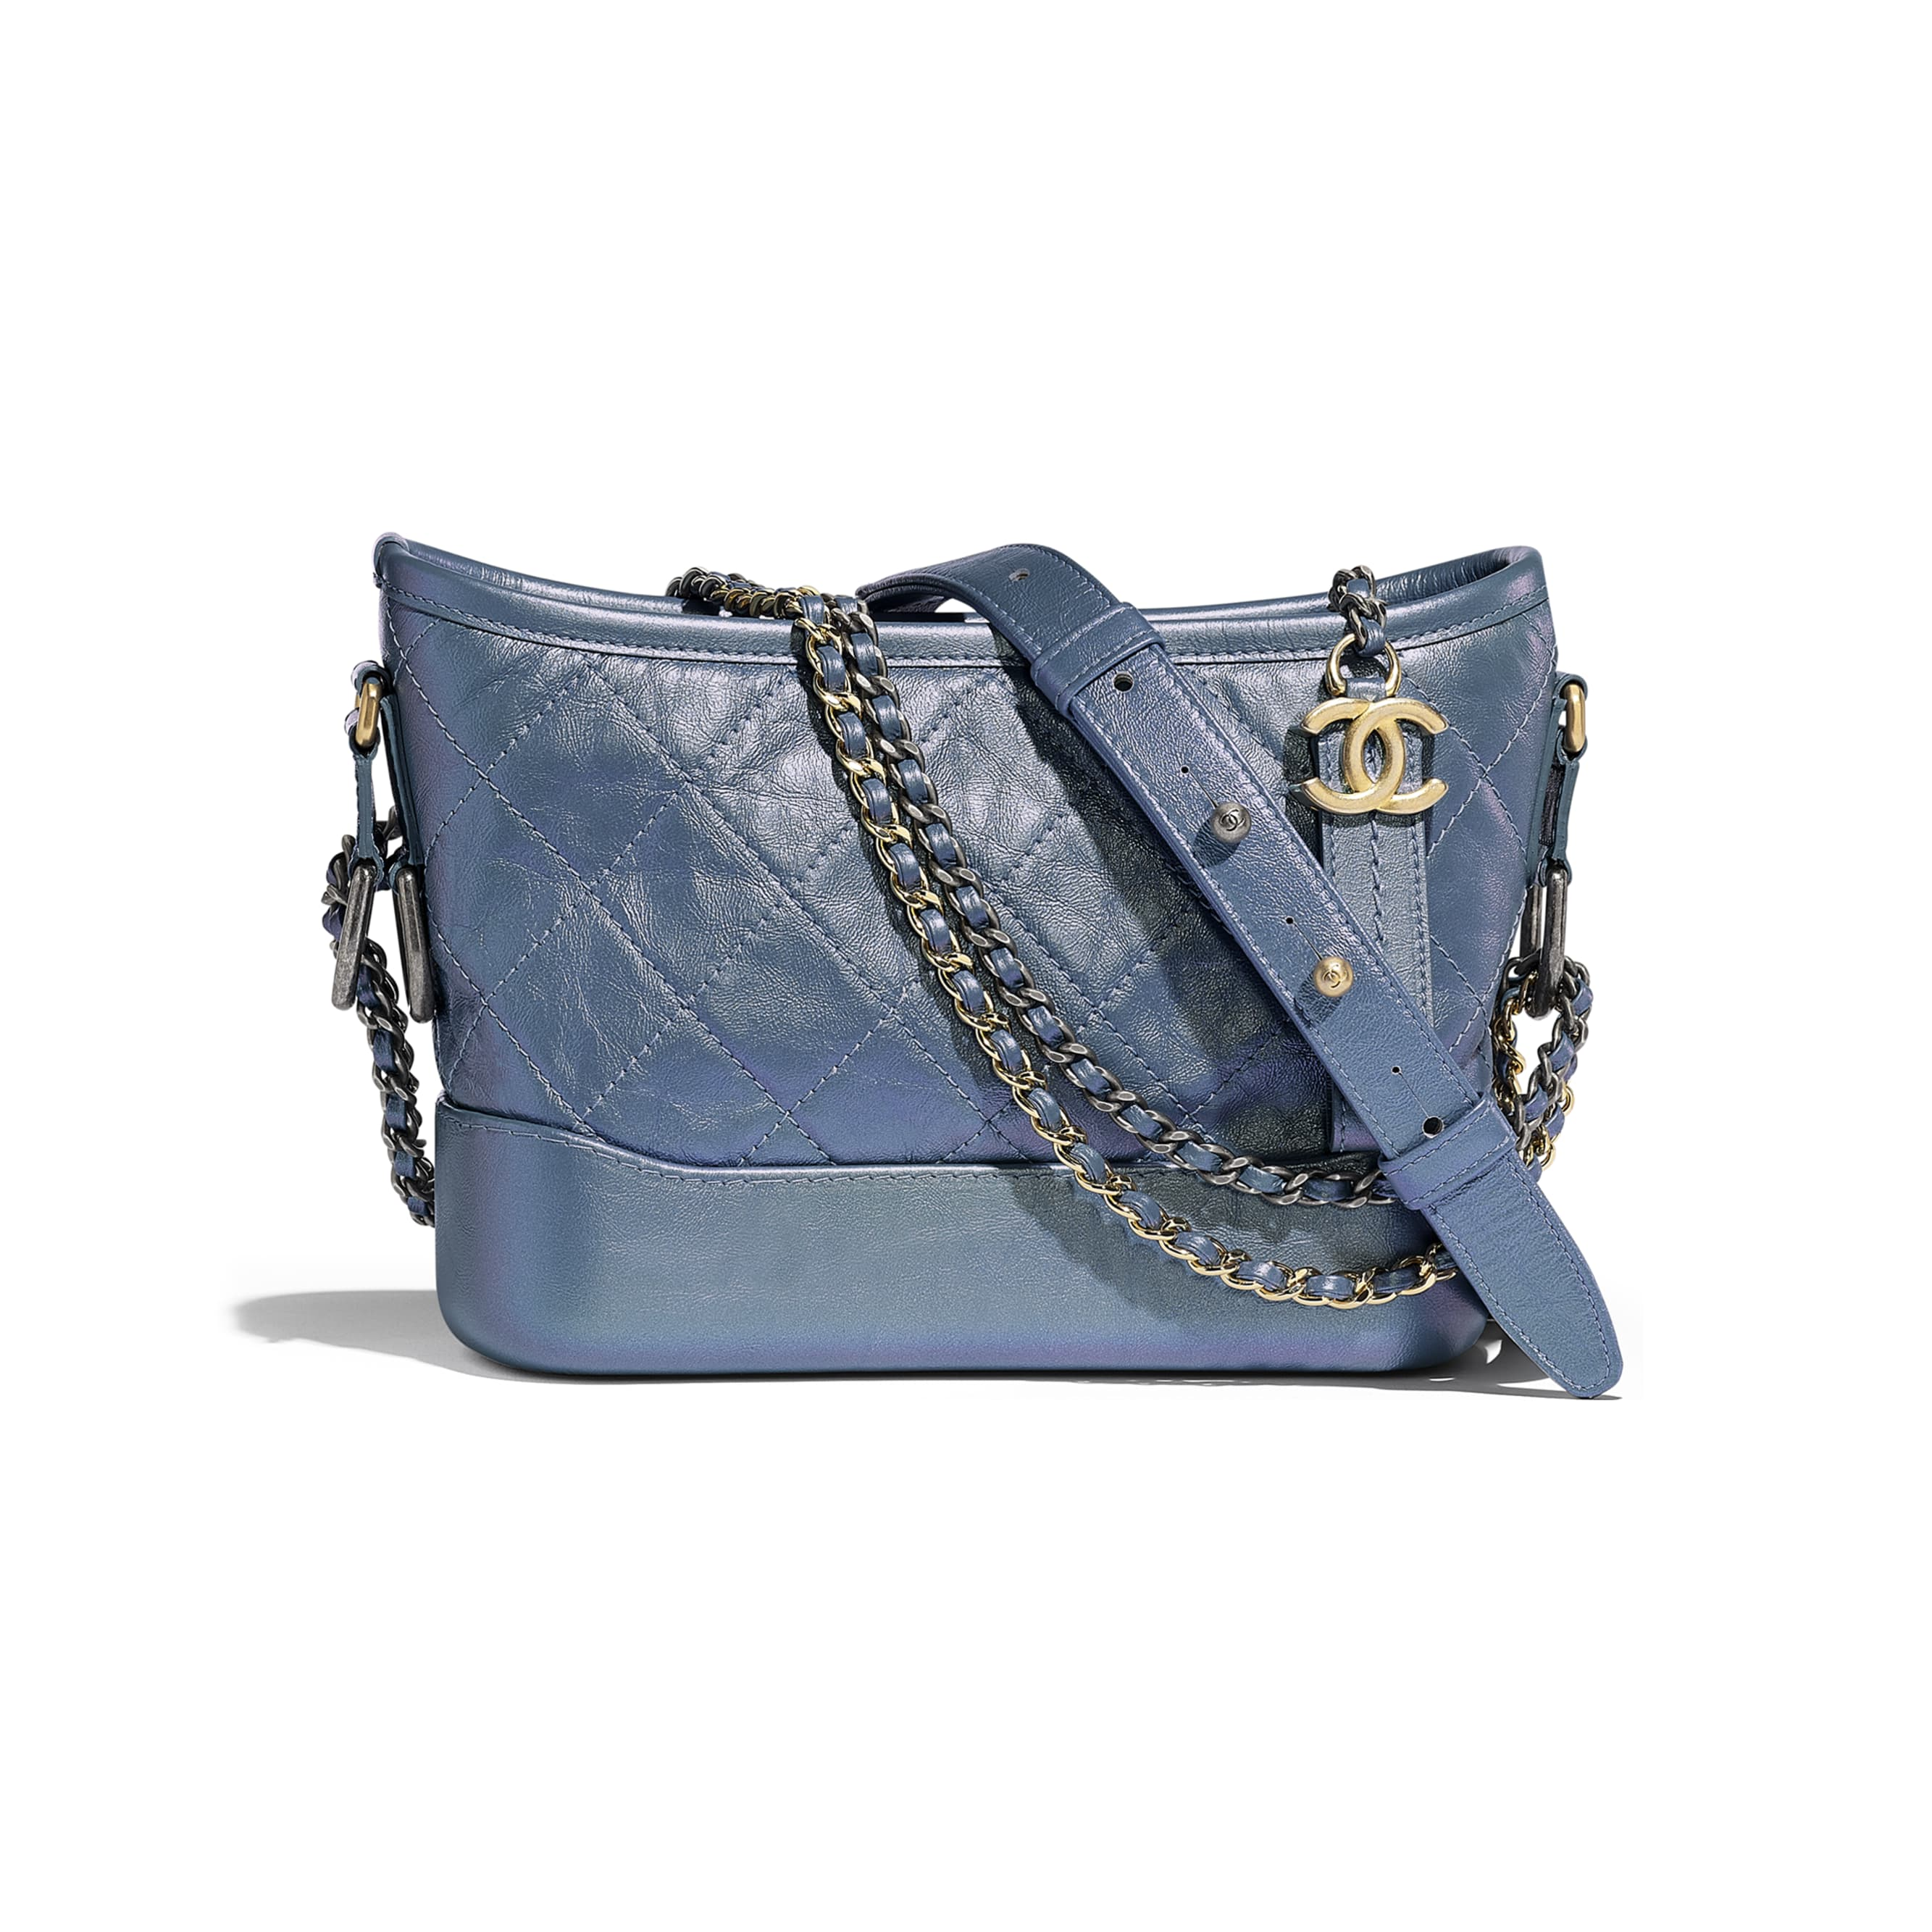 chanel-s-gabrielle-small-hobo-bag-blue-i